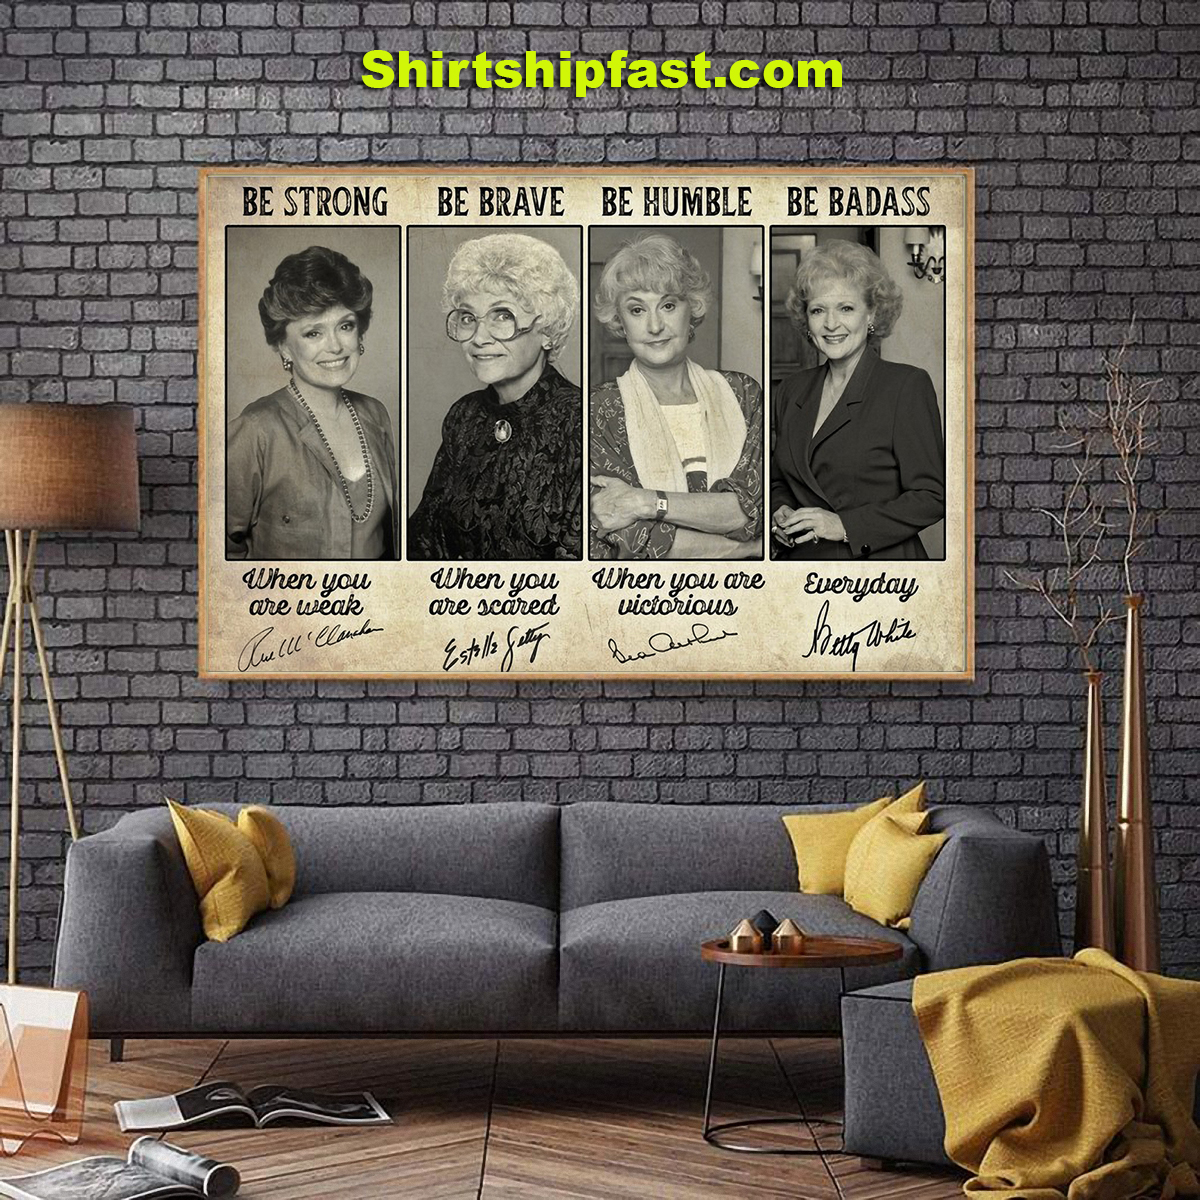 Golden girls signature be strong be brave be humble be badass poster - Picture 1